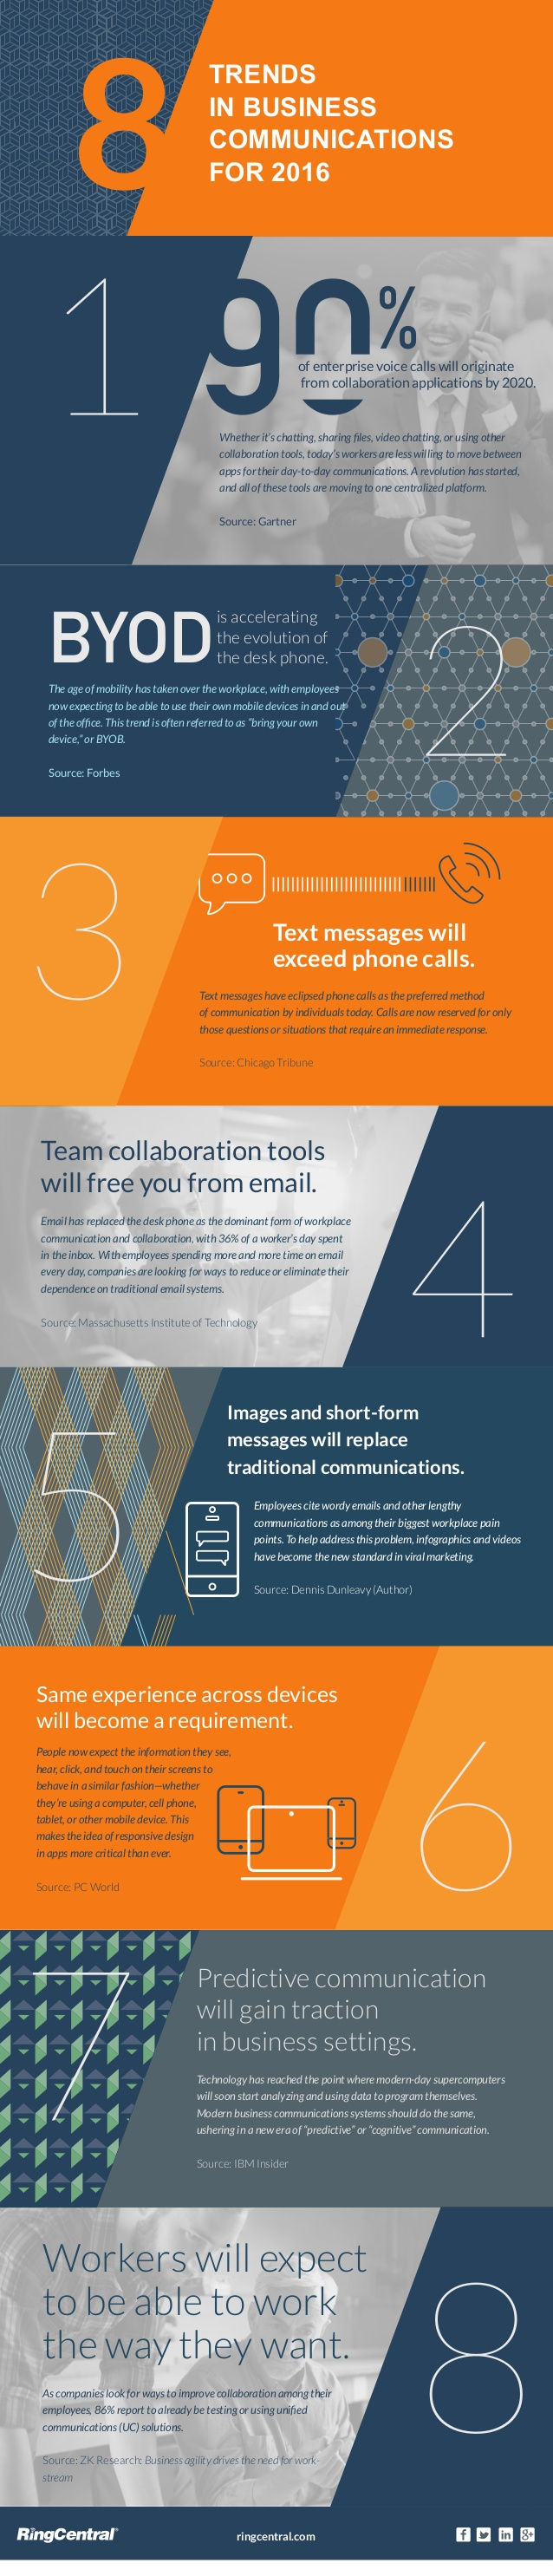 infographic-8-trends-in-business-communication-and-collaboration-for-2016-1-638